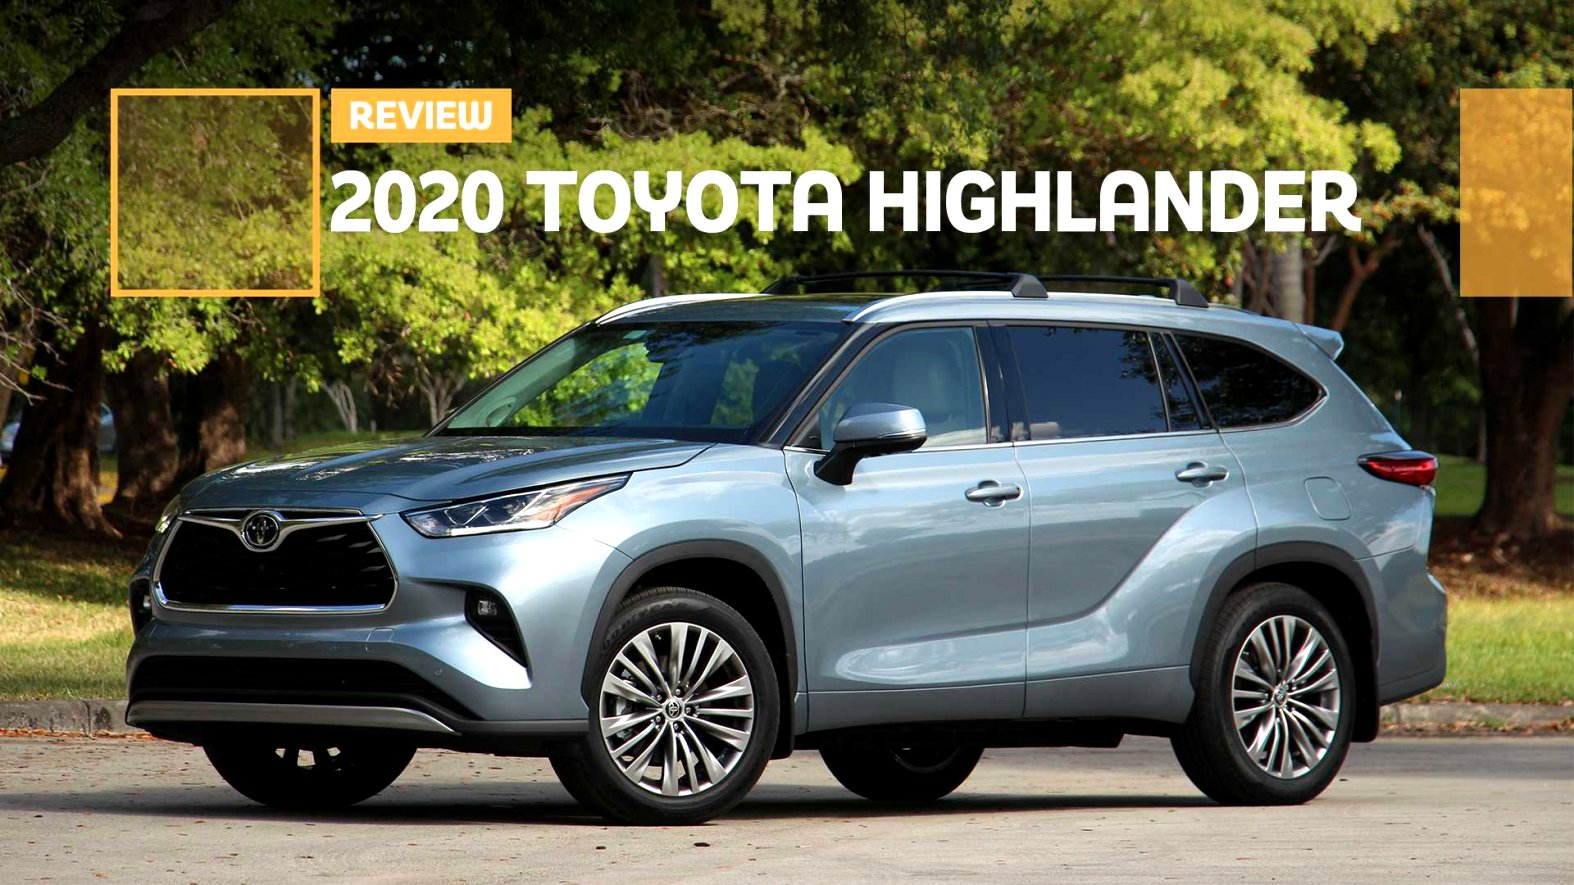 2020 toyota highlander review Review